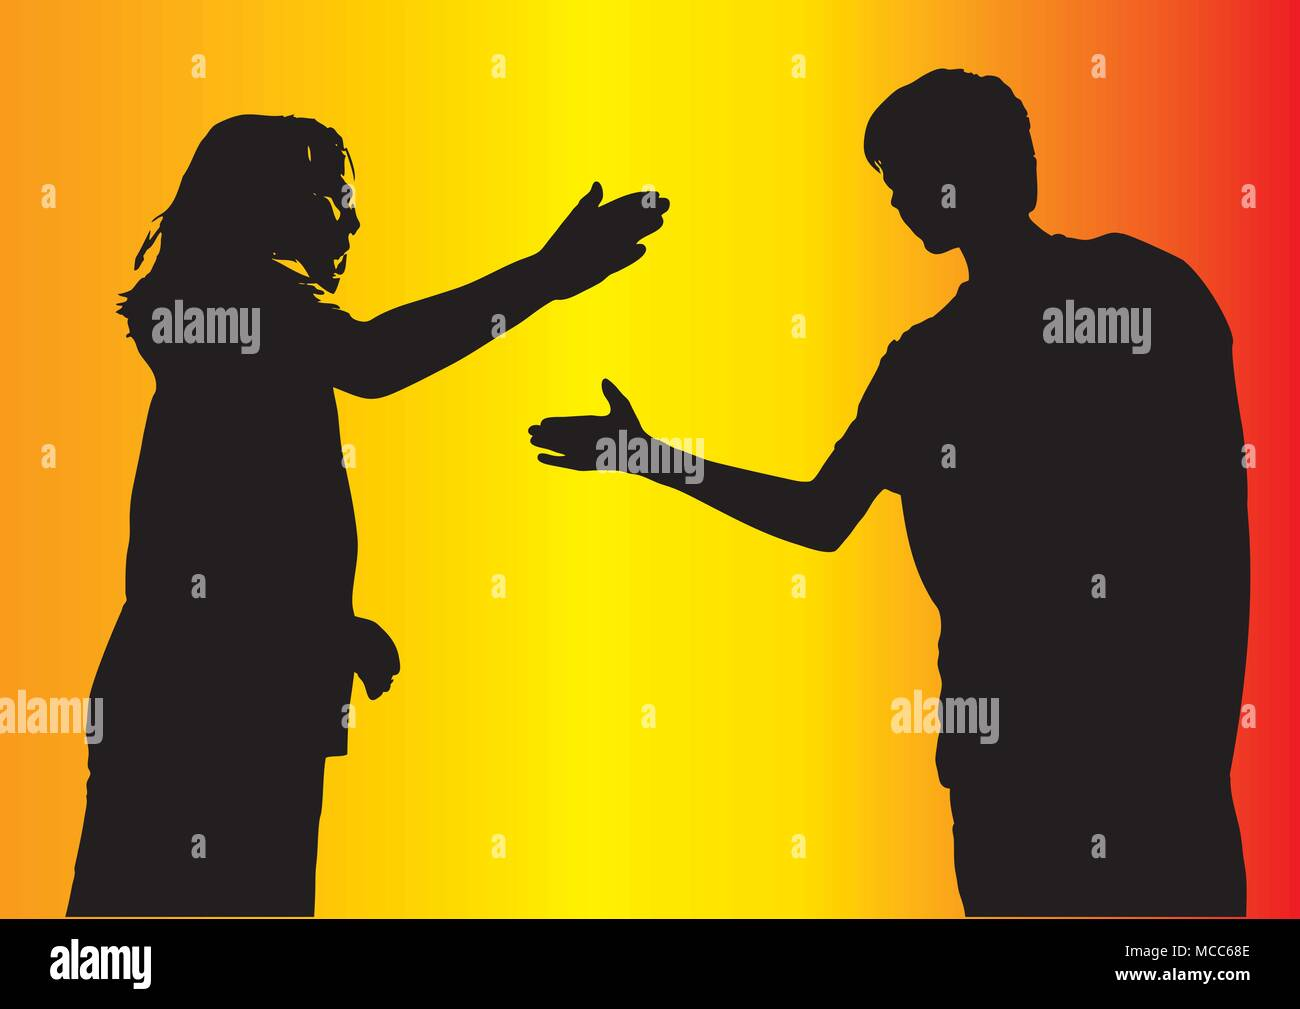 Boy and girl friends greeting each other giving a high five in boy and girl friends greeting each other giving a high five in silhouettector background illustration m4hsunfo